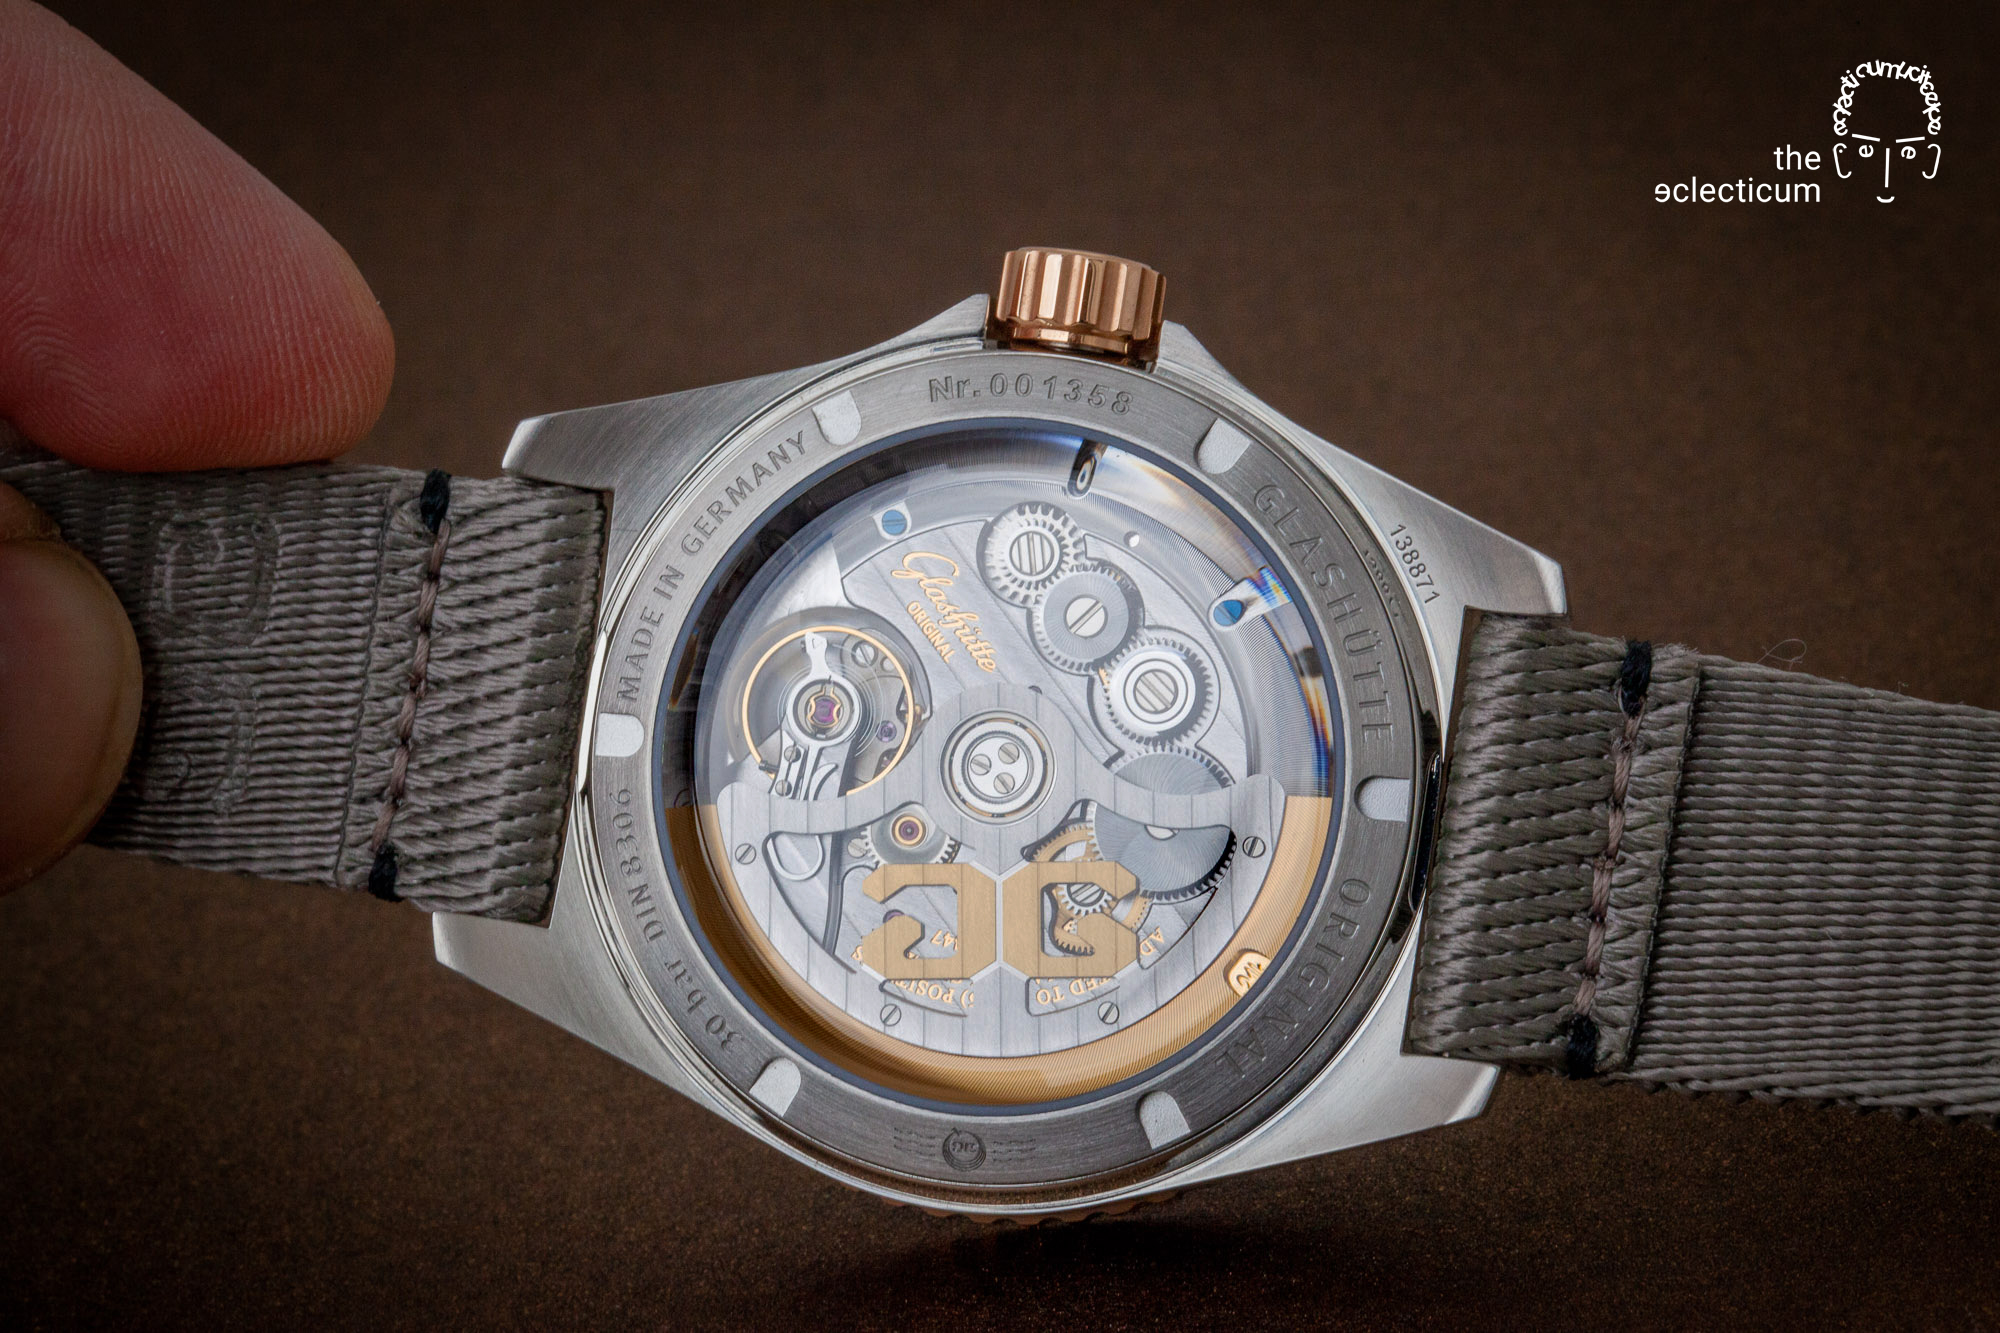 Hands-on with the Glashütte Original SeaQ Panorama Date – stainless steel and red gold